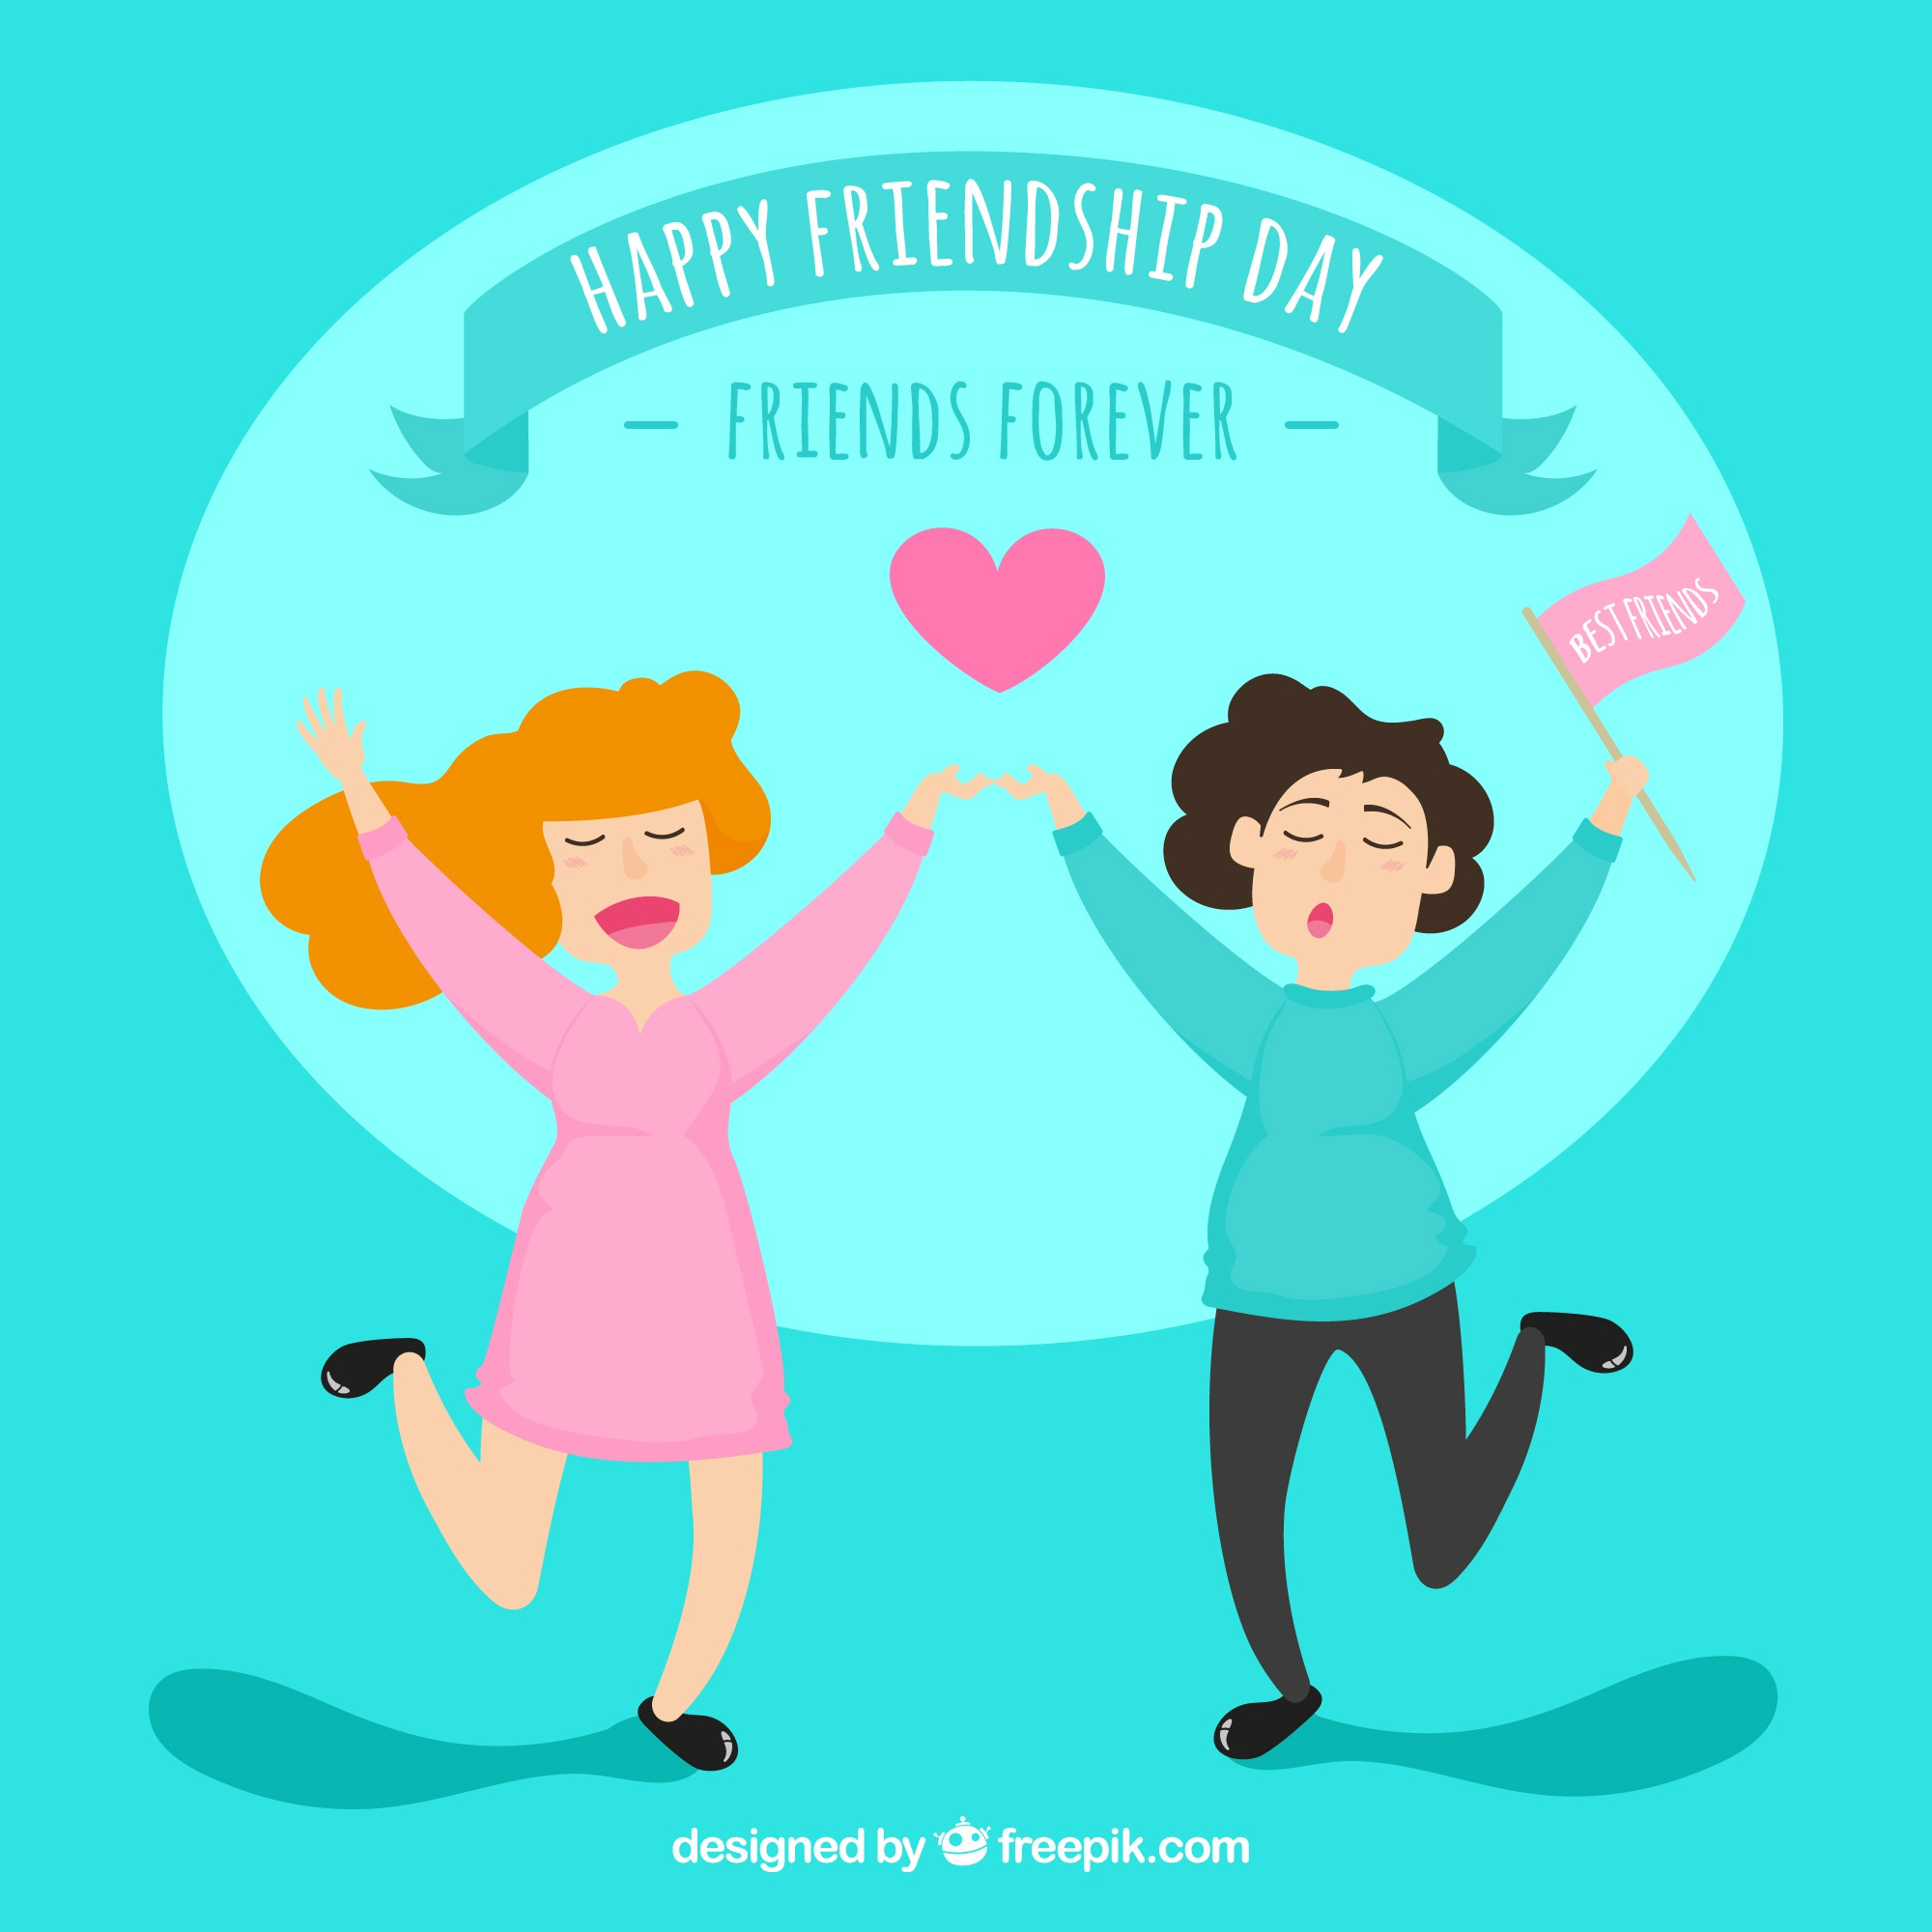 Friendship day background with two happy women